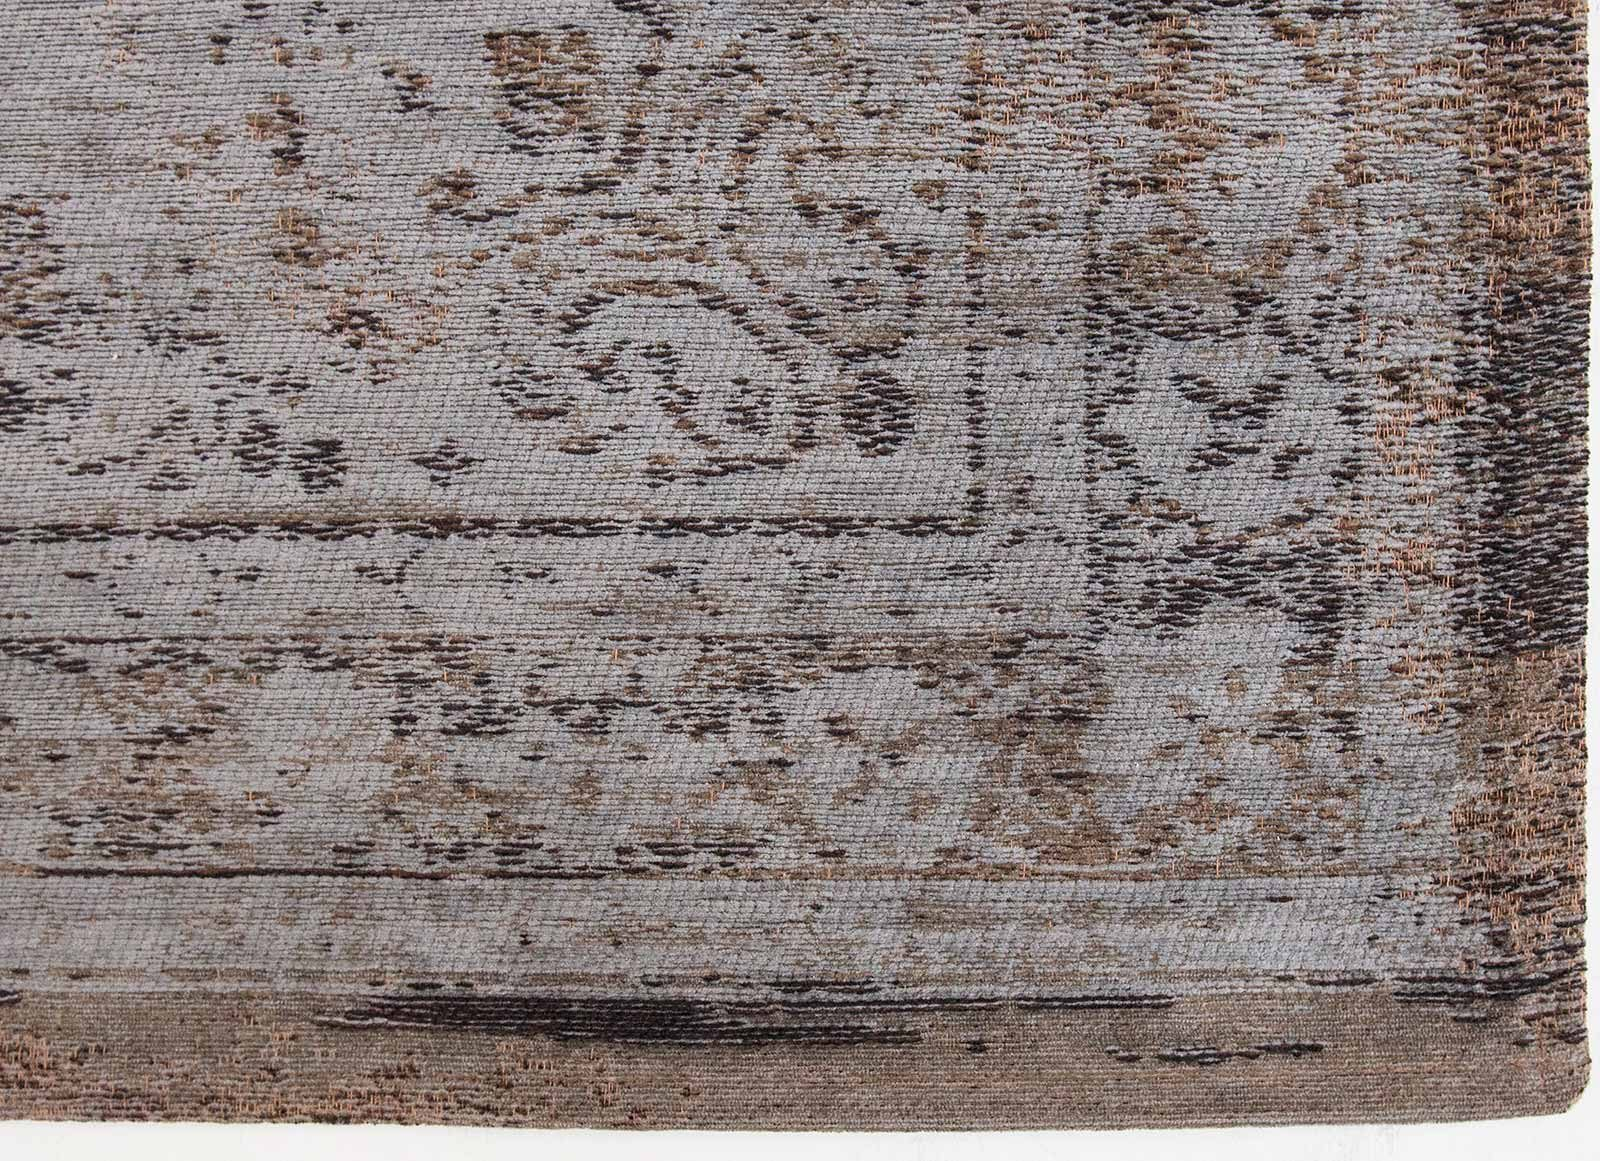 rugs Louis De Poortere LX8257 Fading World Medaillon Grey Ebony corner